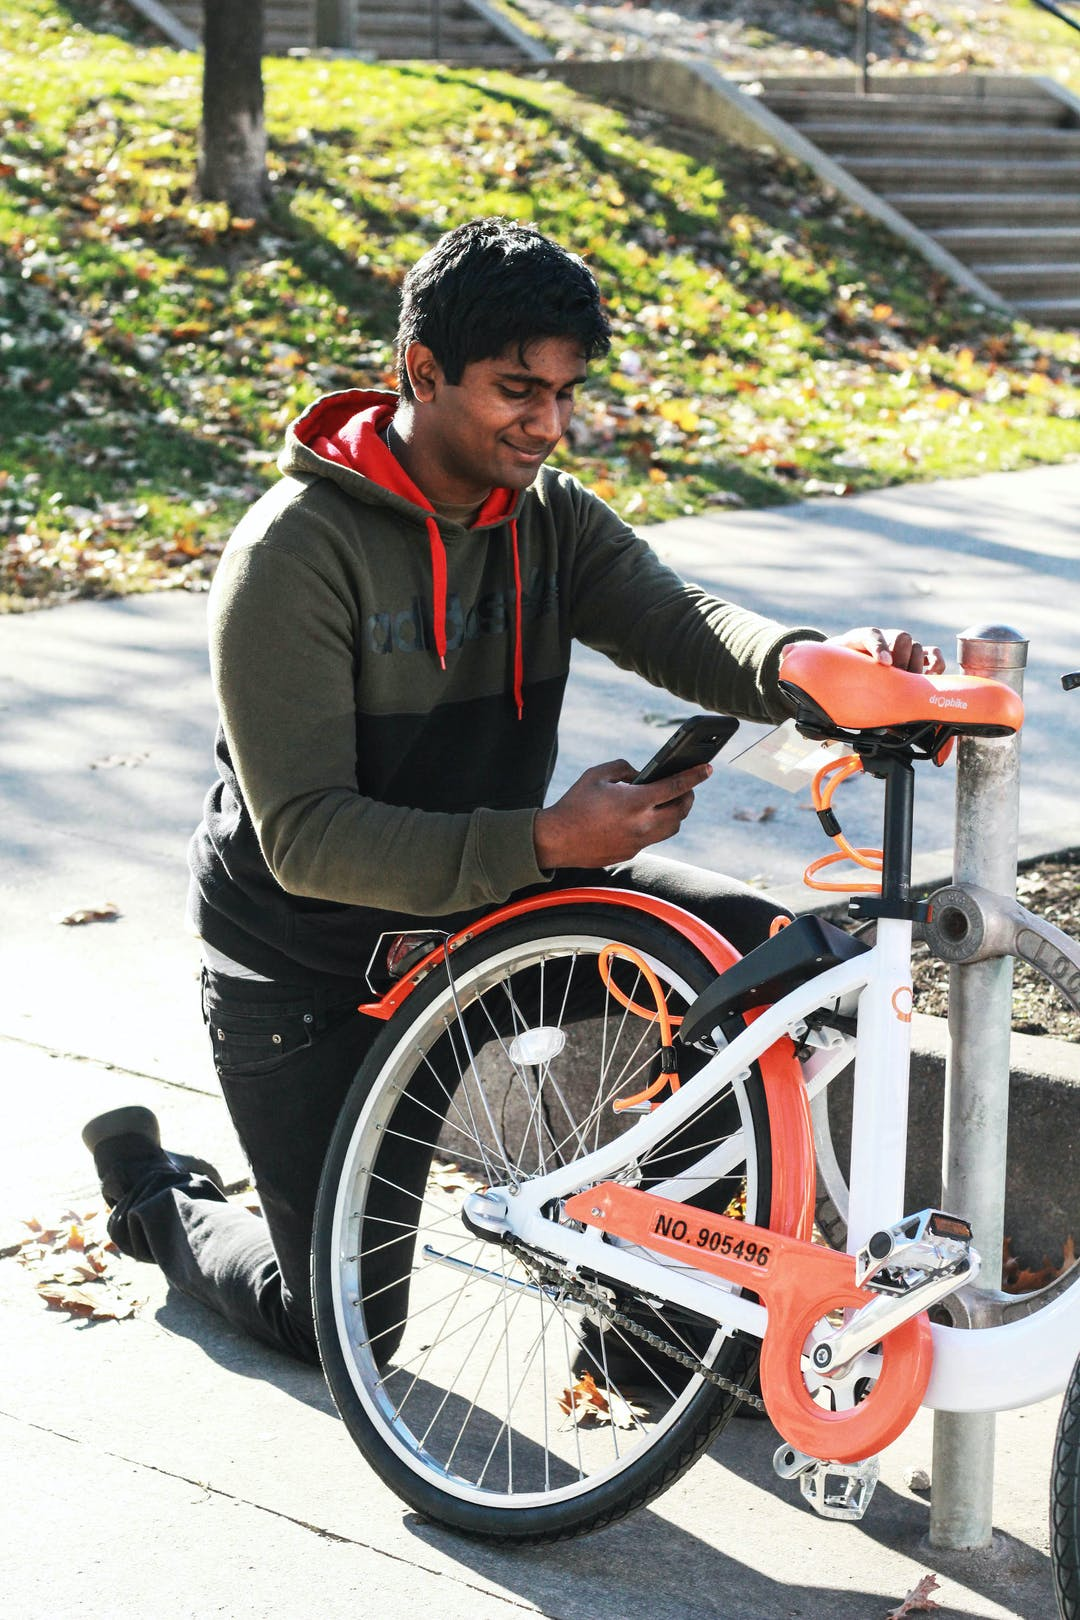 Cyclist using smartphone to unlock bike